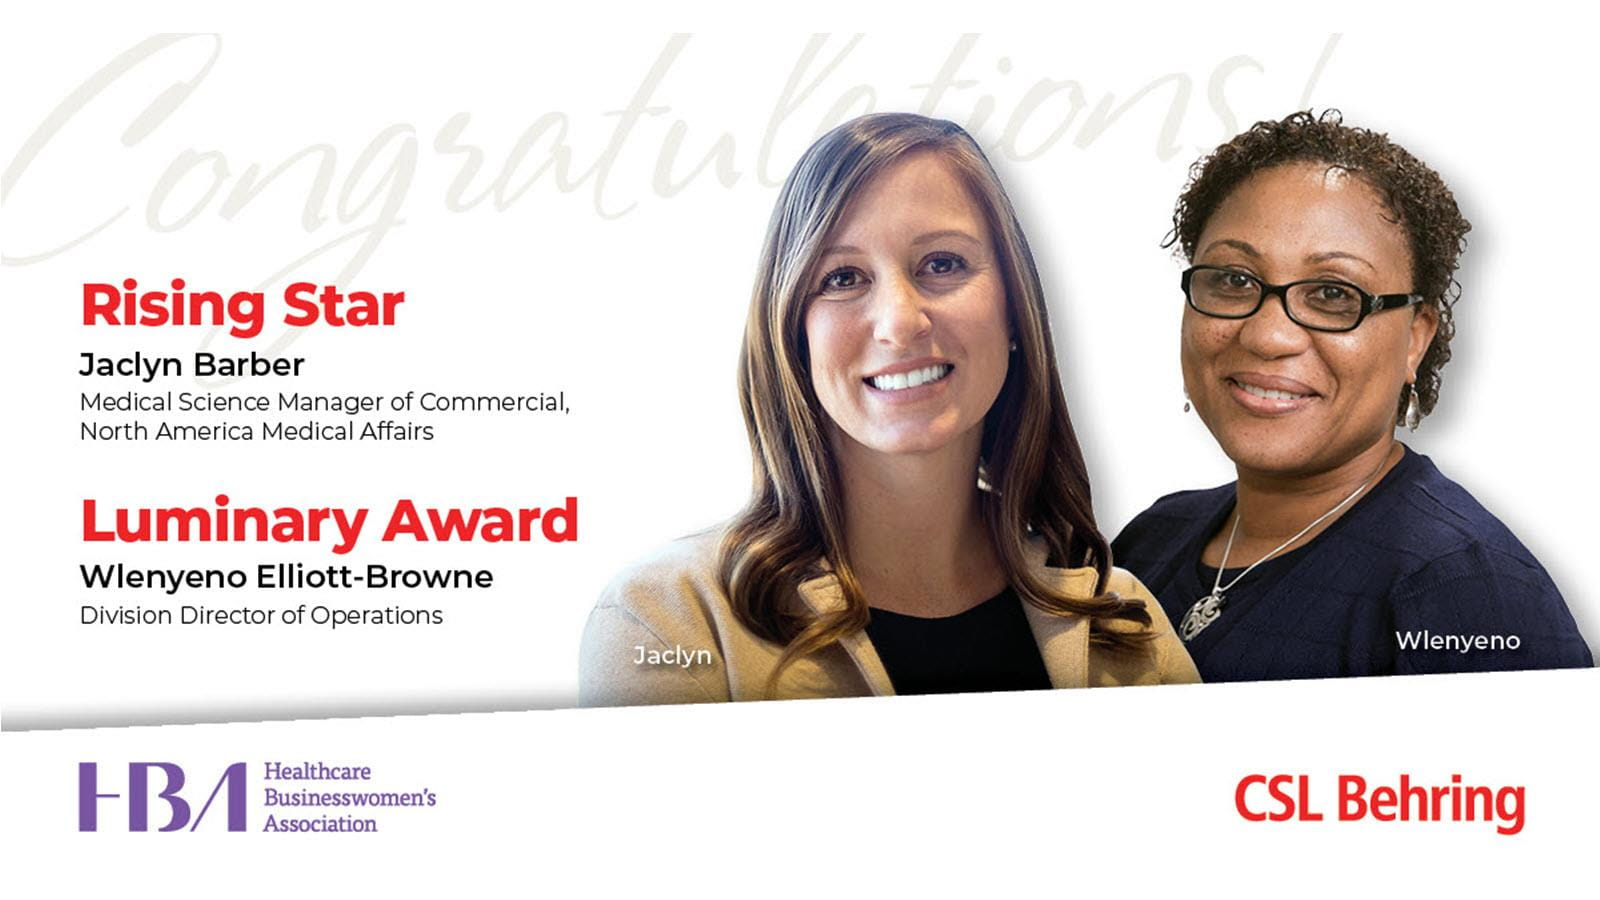 Two Healthcare Businesswomen's Association honorees